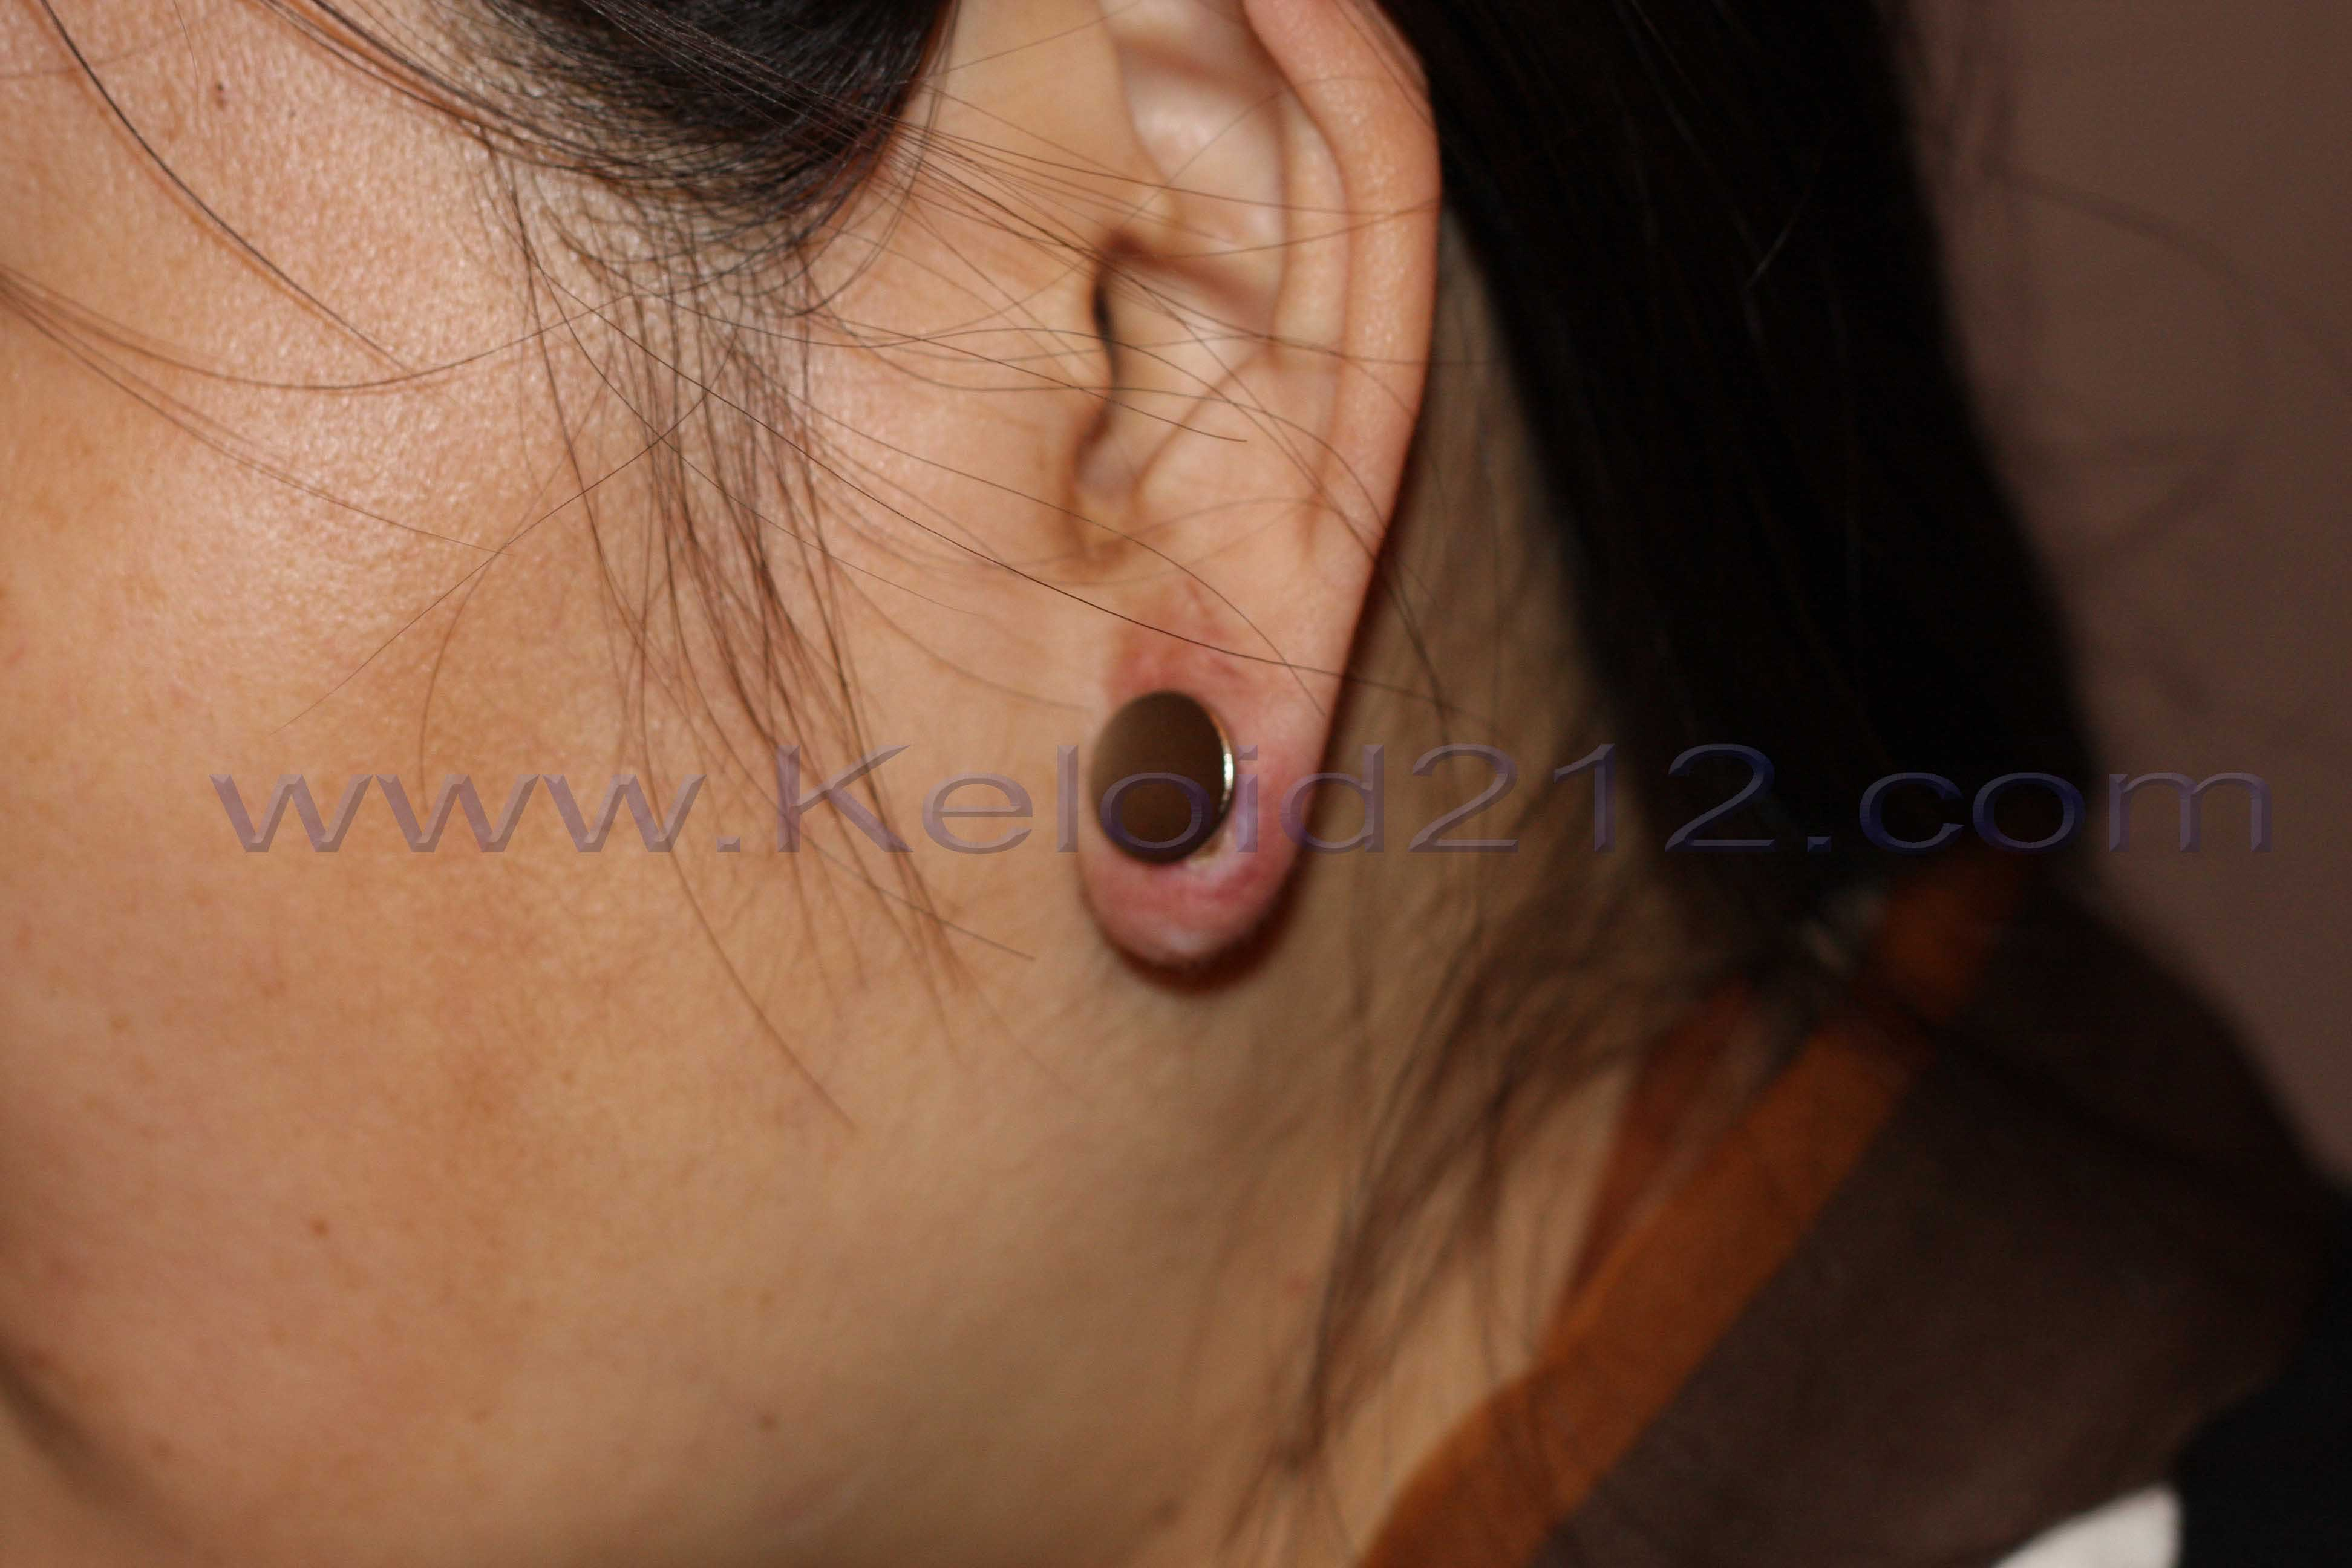 earlobe keloid cure treatment